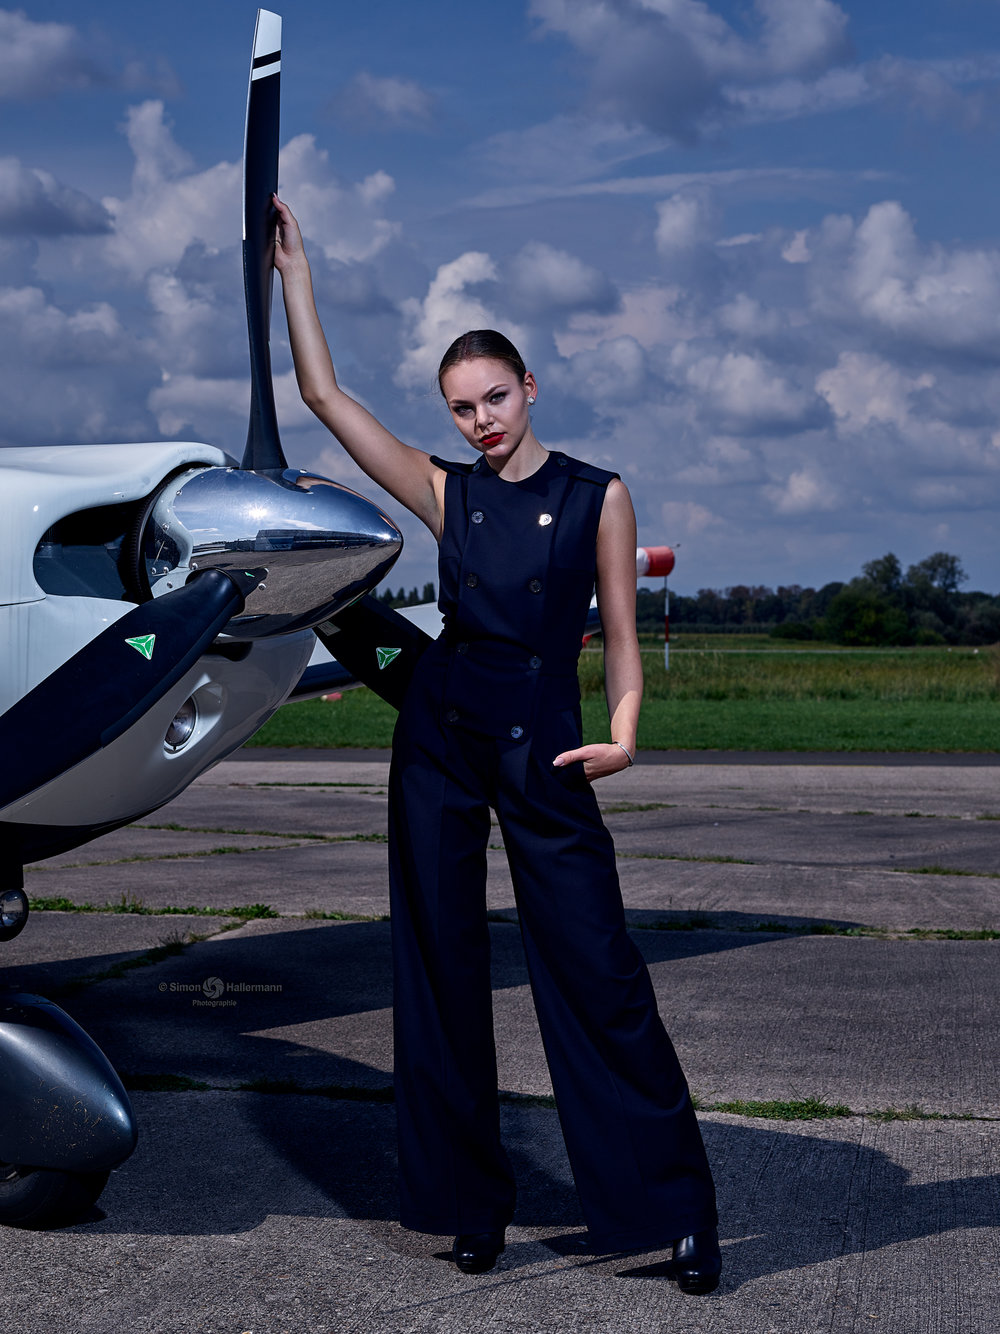 5b426bfc0155-PhaseOne_Meets_Airfield_02_09_2017_033066_2000_Px, model citizen magazine.jpg